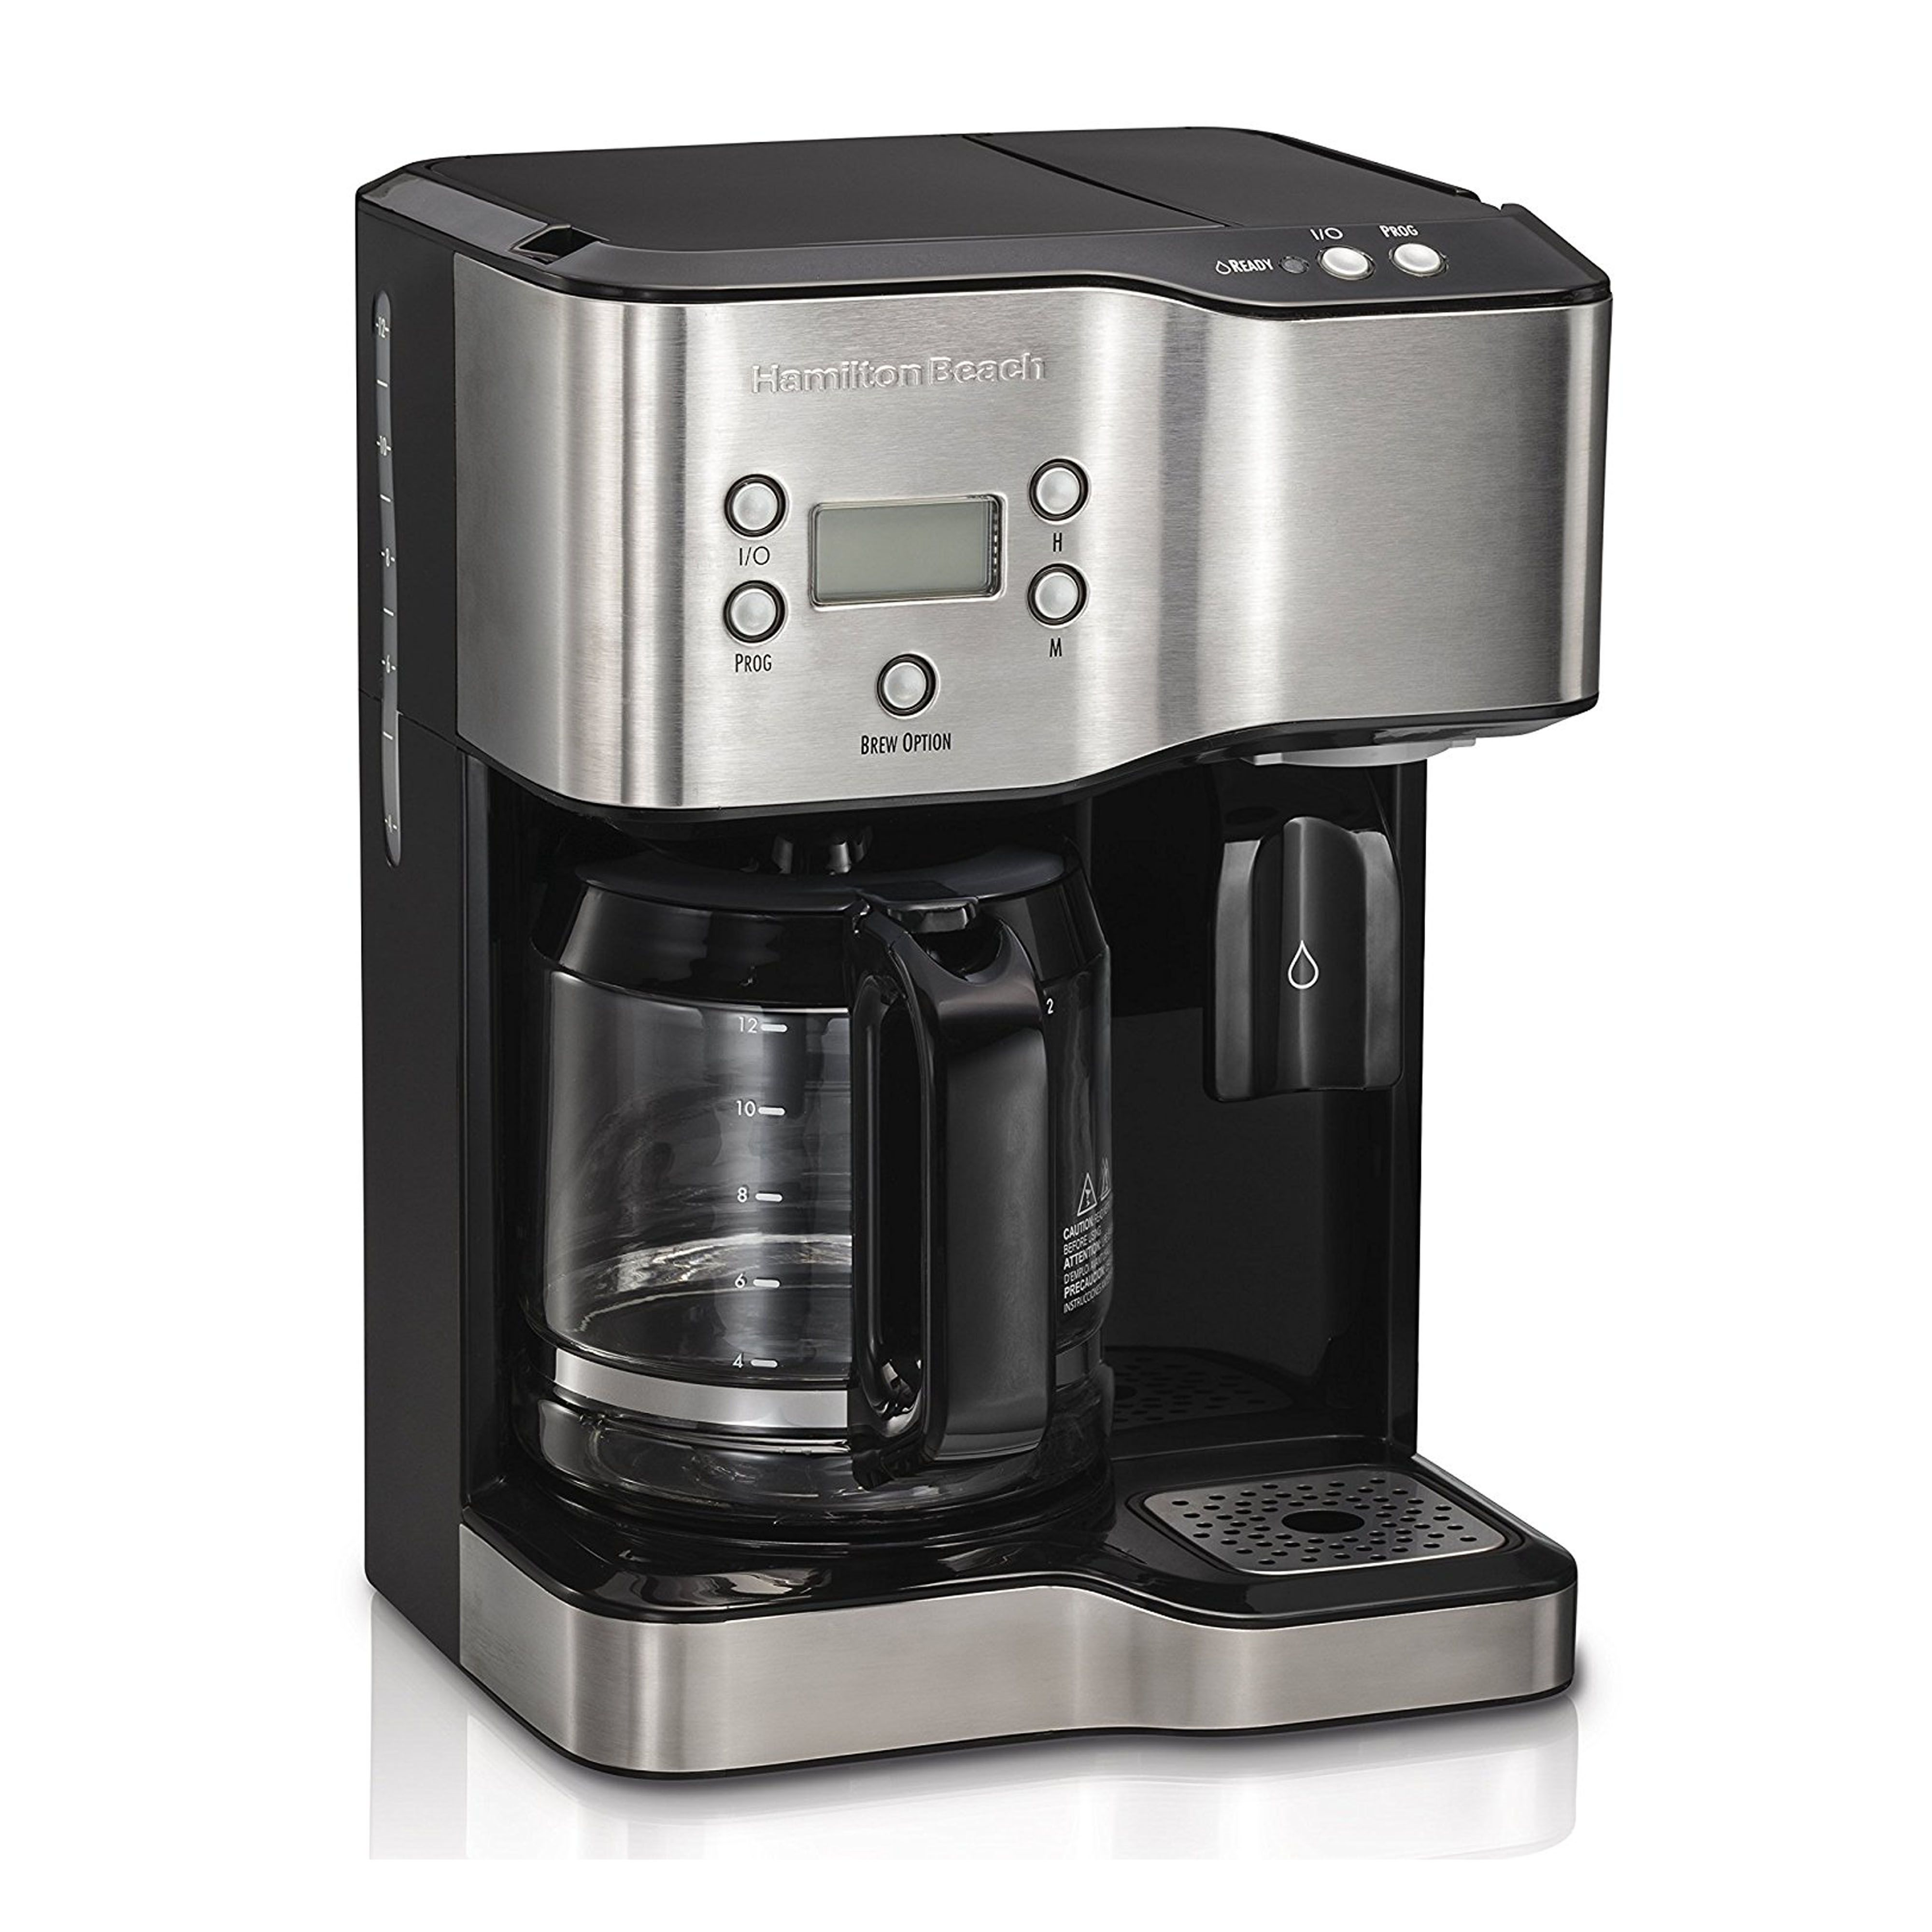 Hamilton Beach Coffeemaker Hot Water Dispenser Review Price And Features